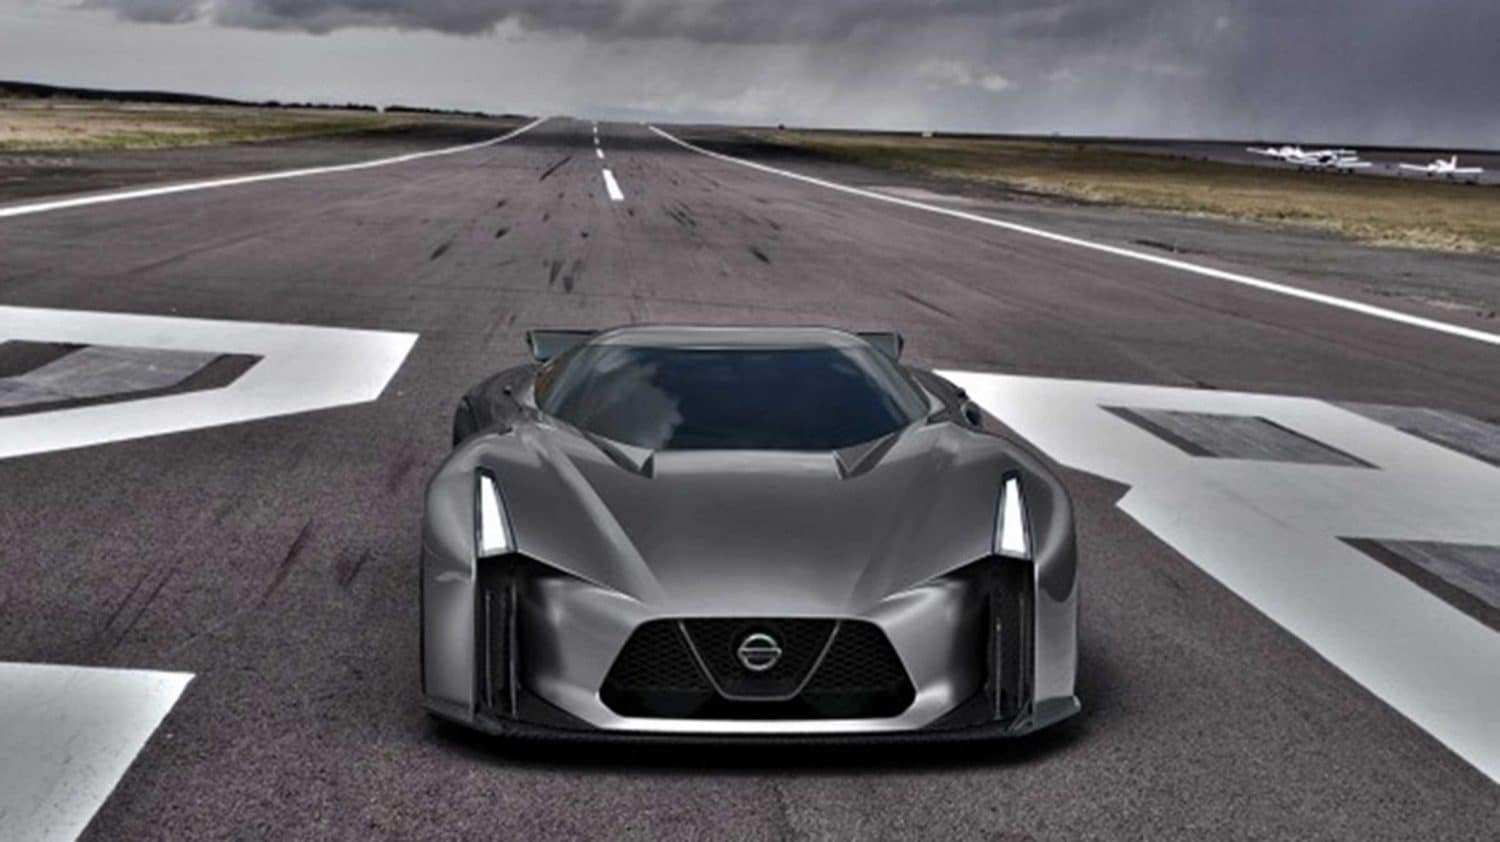 41 Concept of Nissan 2020 Vision Gt Concept with Nissan 2020 Vision Gt